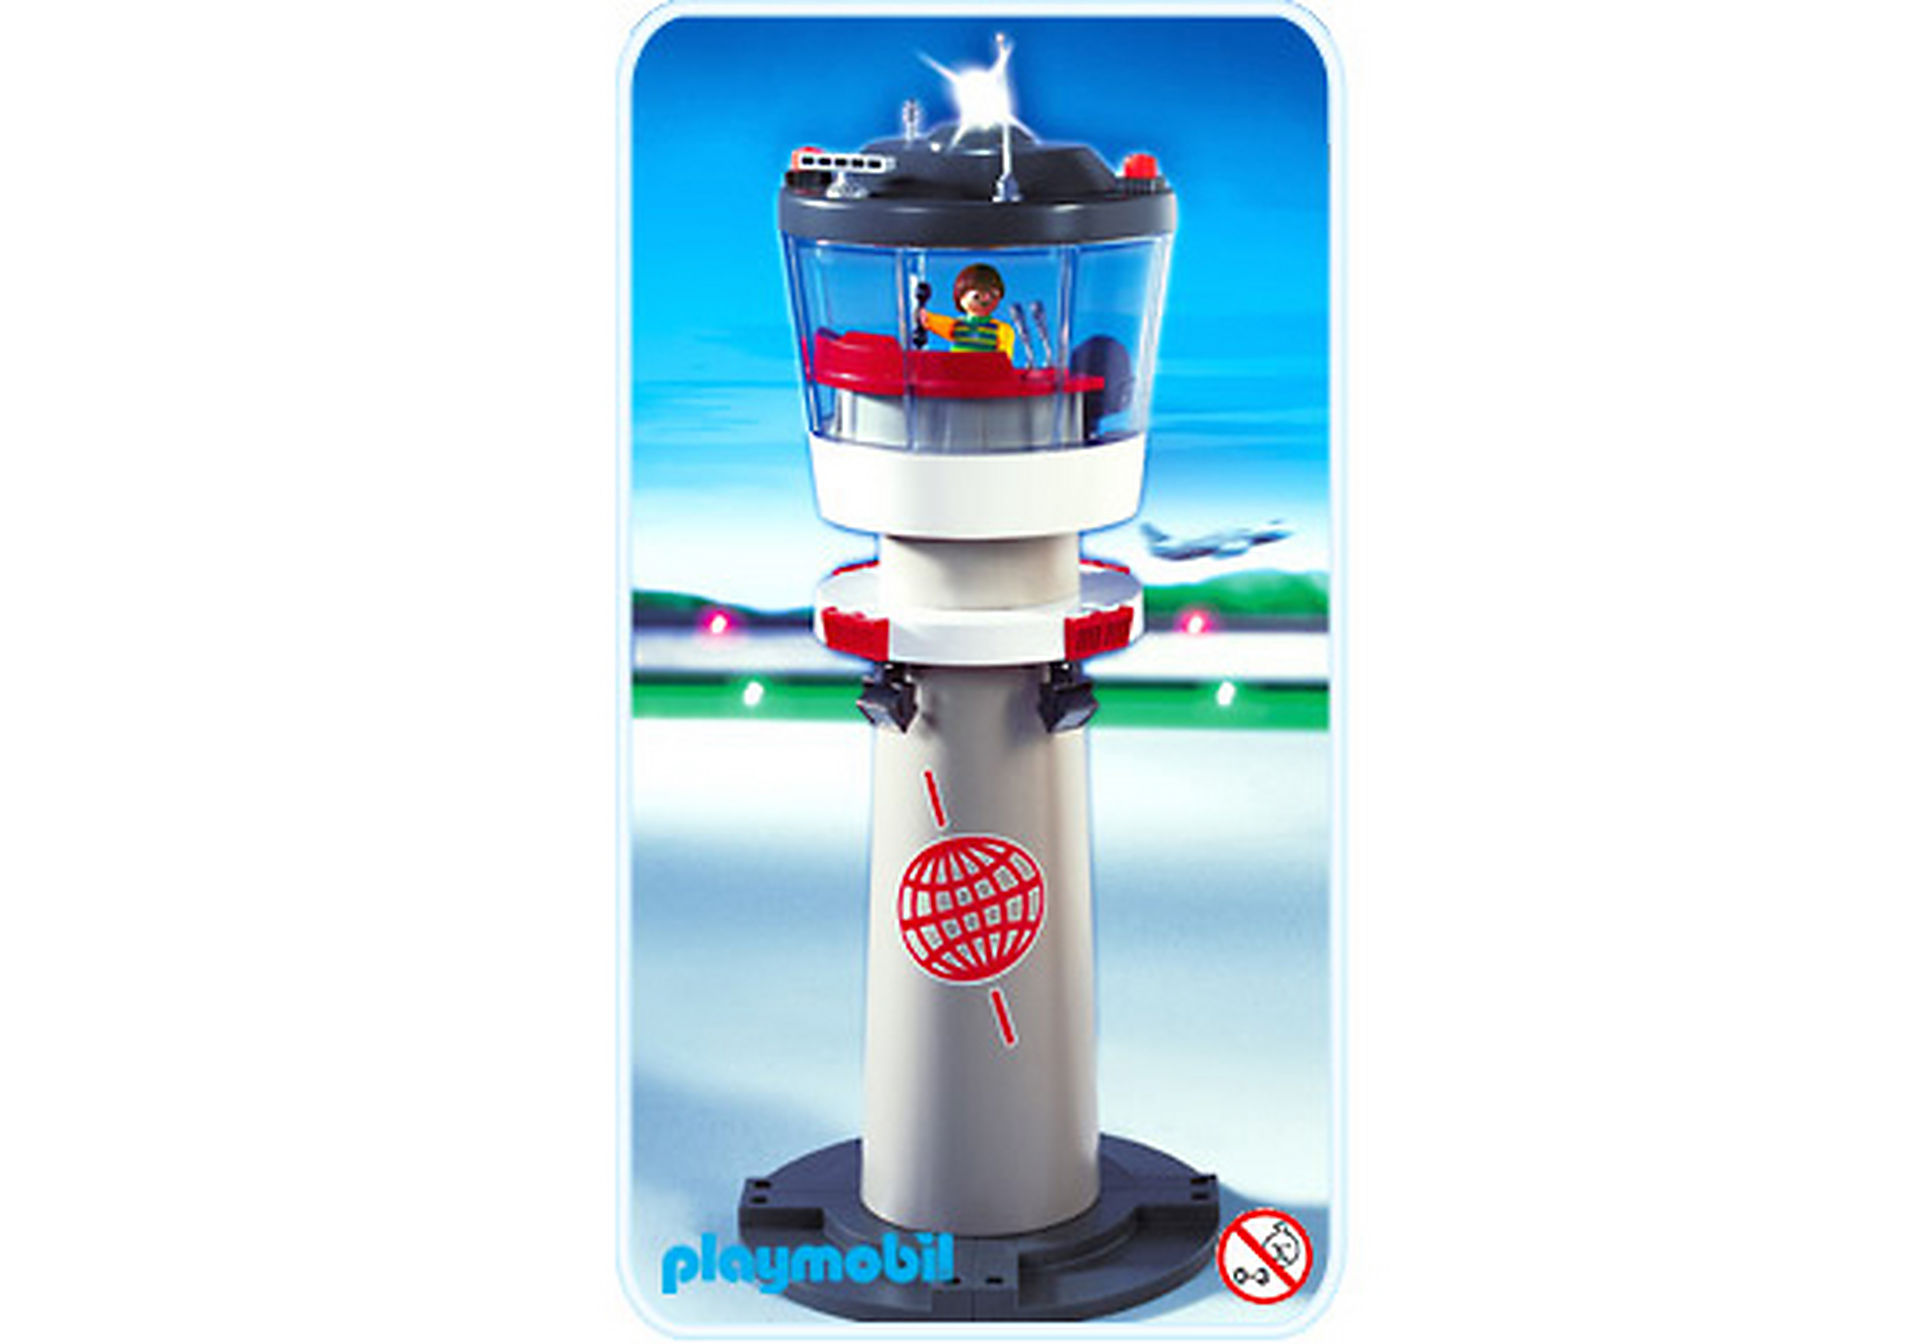 http://media.playmobil.com/i/playmobil/4313-A_product_detail/Tower mit Blinklicht